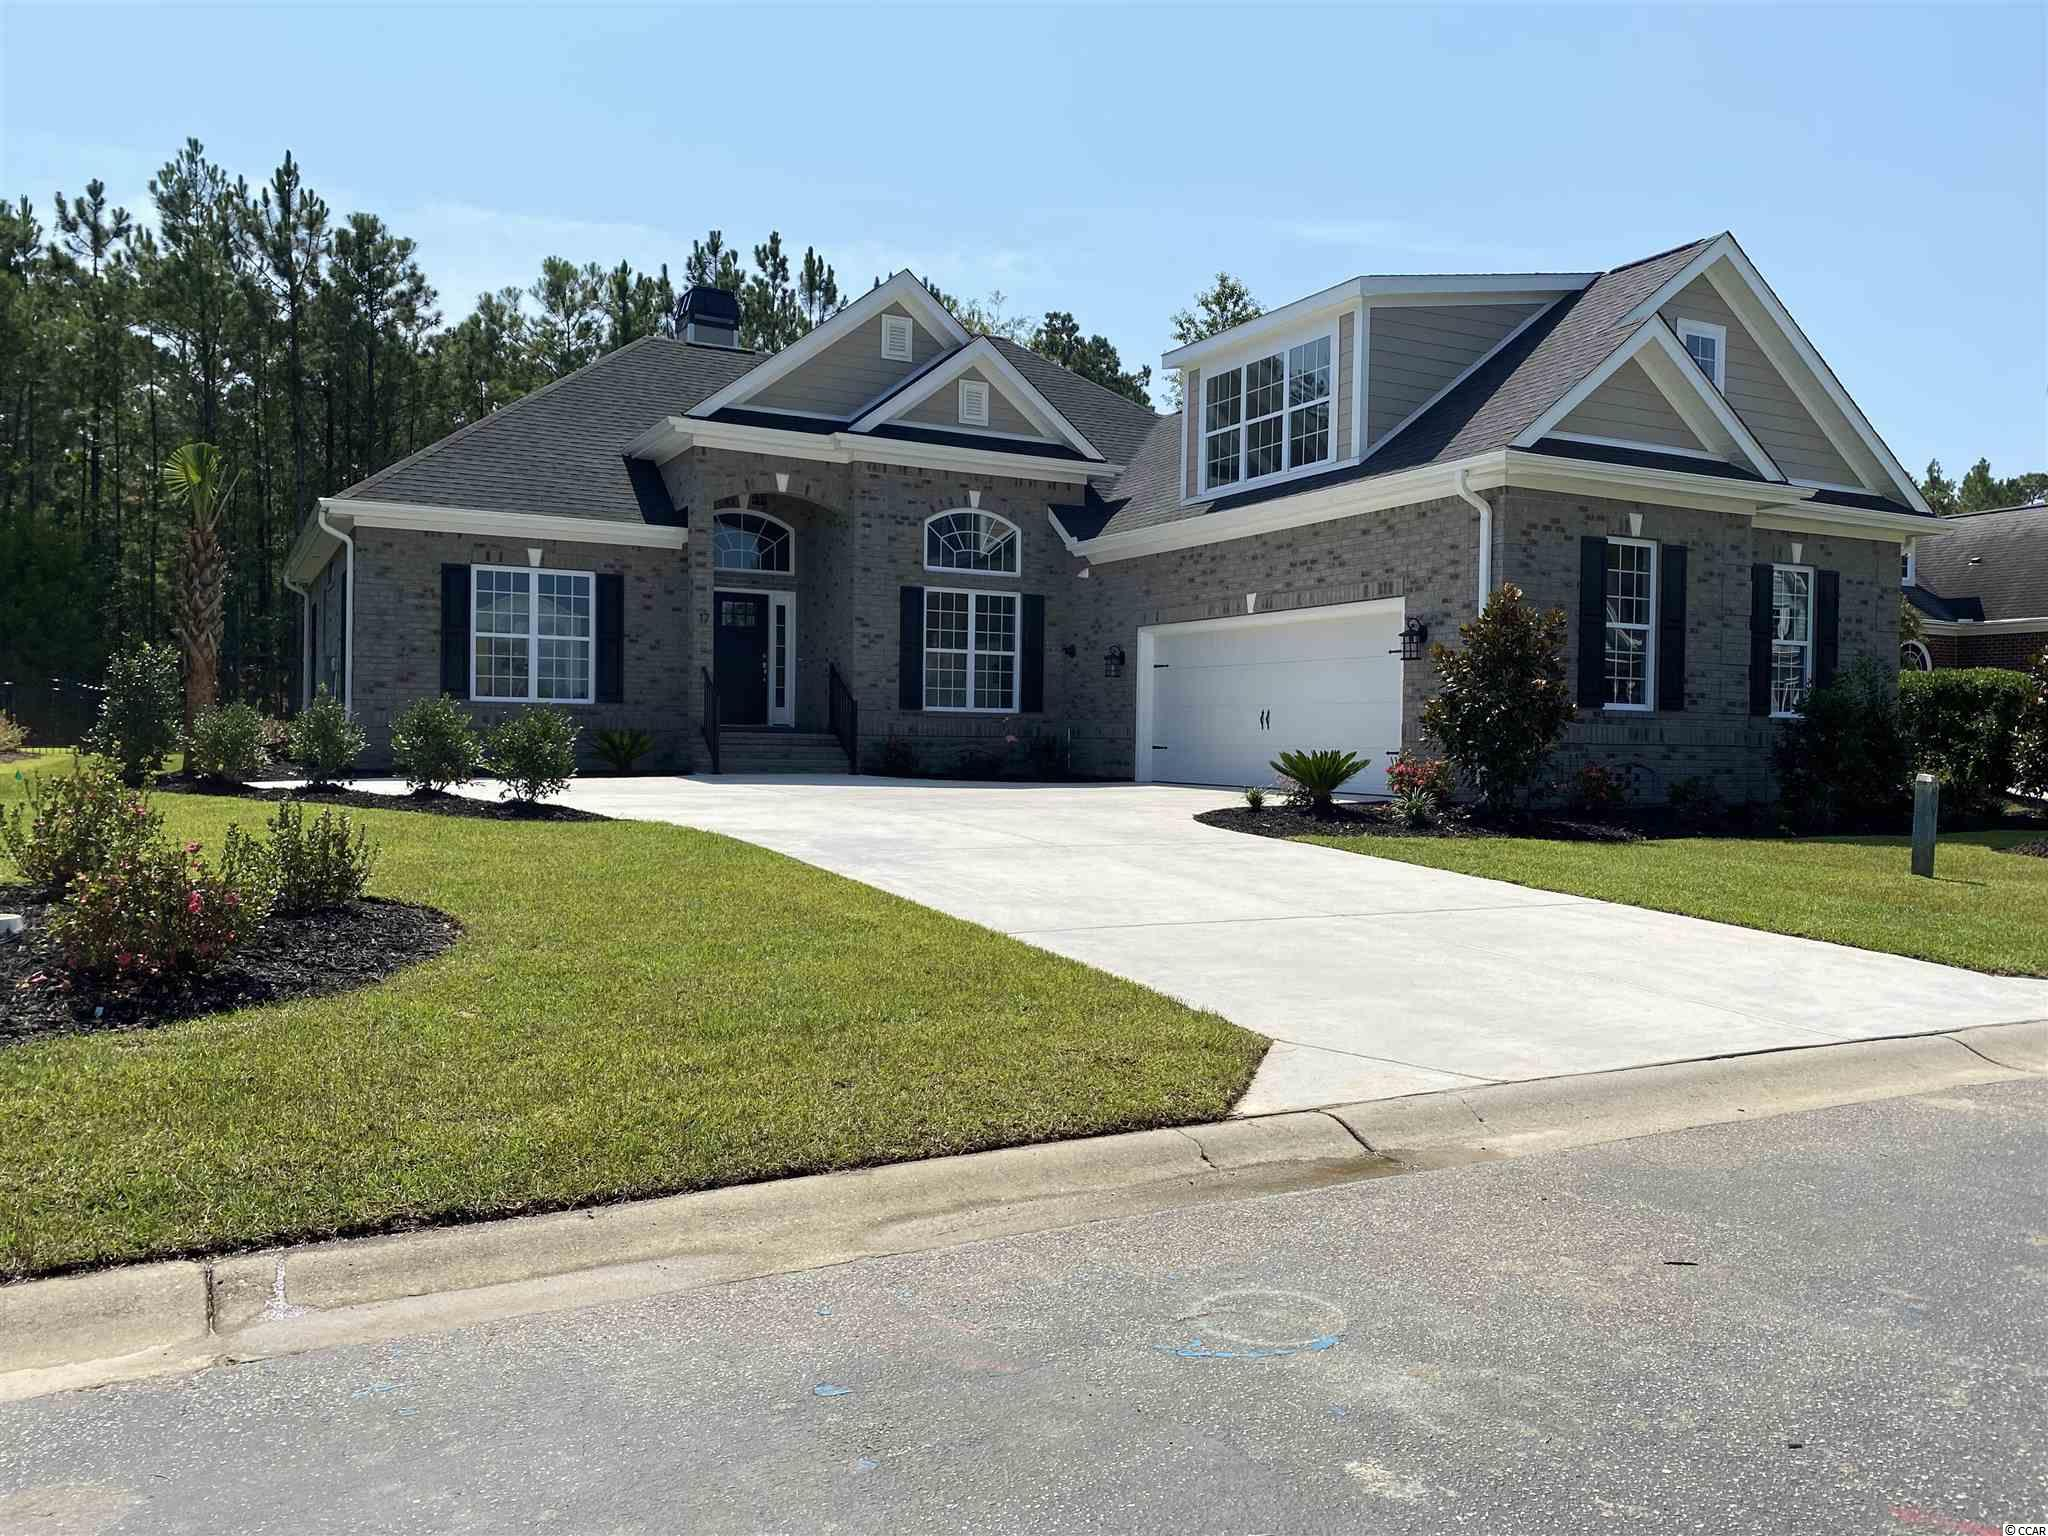 """Prince Creek area of Murrells Inlet! Home of the TPC Golf Course and the Dustin Johnson Golf School. A Custom home built in an upscale gated community on a cul de sac lot. Home will be built with great craftsmen shift and will have all the sizzle included. THE SIZZLE will include brick and concrete fiber siding exterior, granite counter tops, custom built 42 inch cabinets with specialized crown molding, vinyl plank floors, stainless steel appliances, tiled shower, gas fireplace, large kitchen center island, over sized bonus room, formal dining room, irrigation system with a professionally landscaped yard, custom light package, rear porch, courtyard driveway, Vaulted and trey ceilings and much more. Come see for yourself to many upgrades to list. Waverly Bay is an upscale gated community with all the amenities one would ever want. Starts with a gated access to a 10 acre amenity center area featuring - two pools with a clubhouse, tennis courts, bocce ball,basketball and volleyball courts, fire pits, walking trails, playground area, soccer field, covered outdoor pavilion with large fireplace, grills and picnic tables, community sidewalks and much more. Your not just buying a home your buying a """"LIFESTYLE""""."""